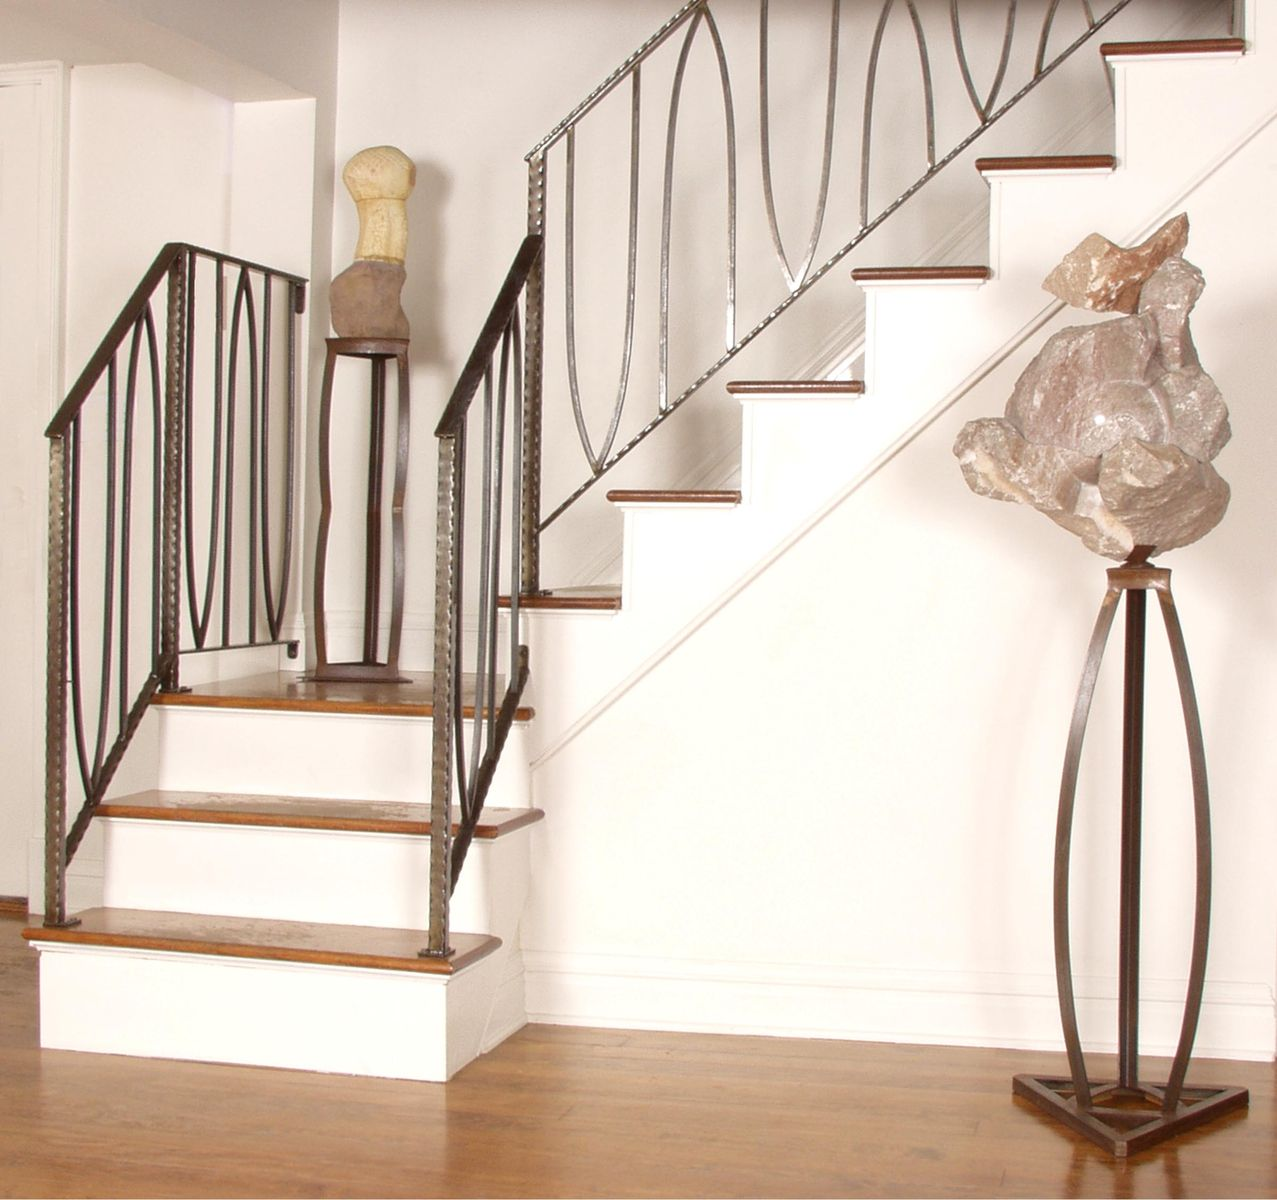 Hand Crafted Anahata Stair Railing By Eric David Laxman